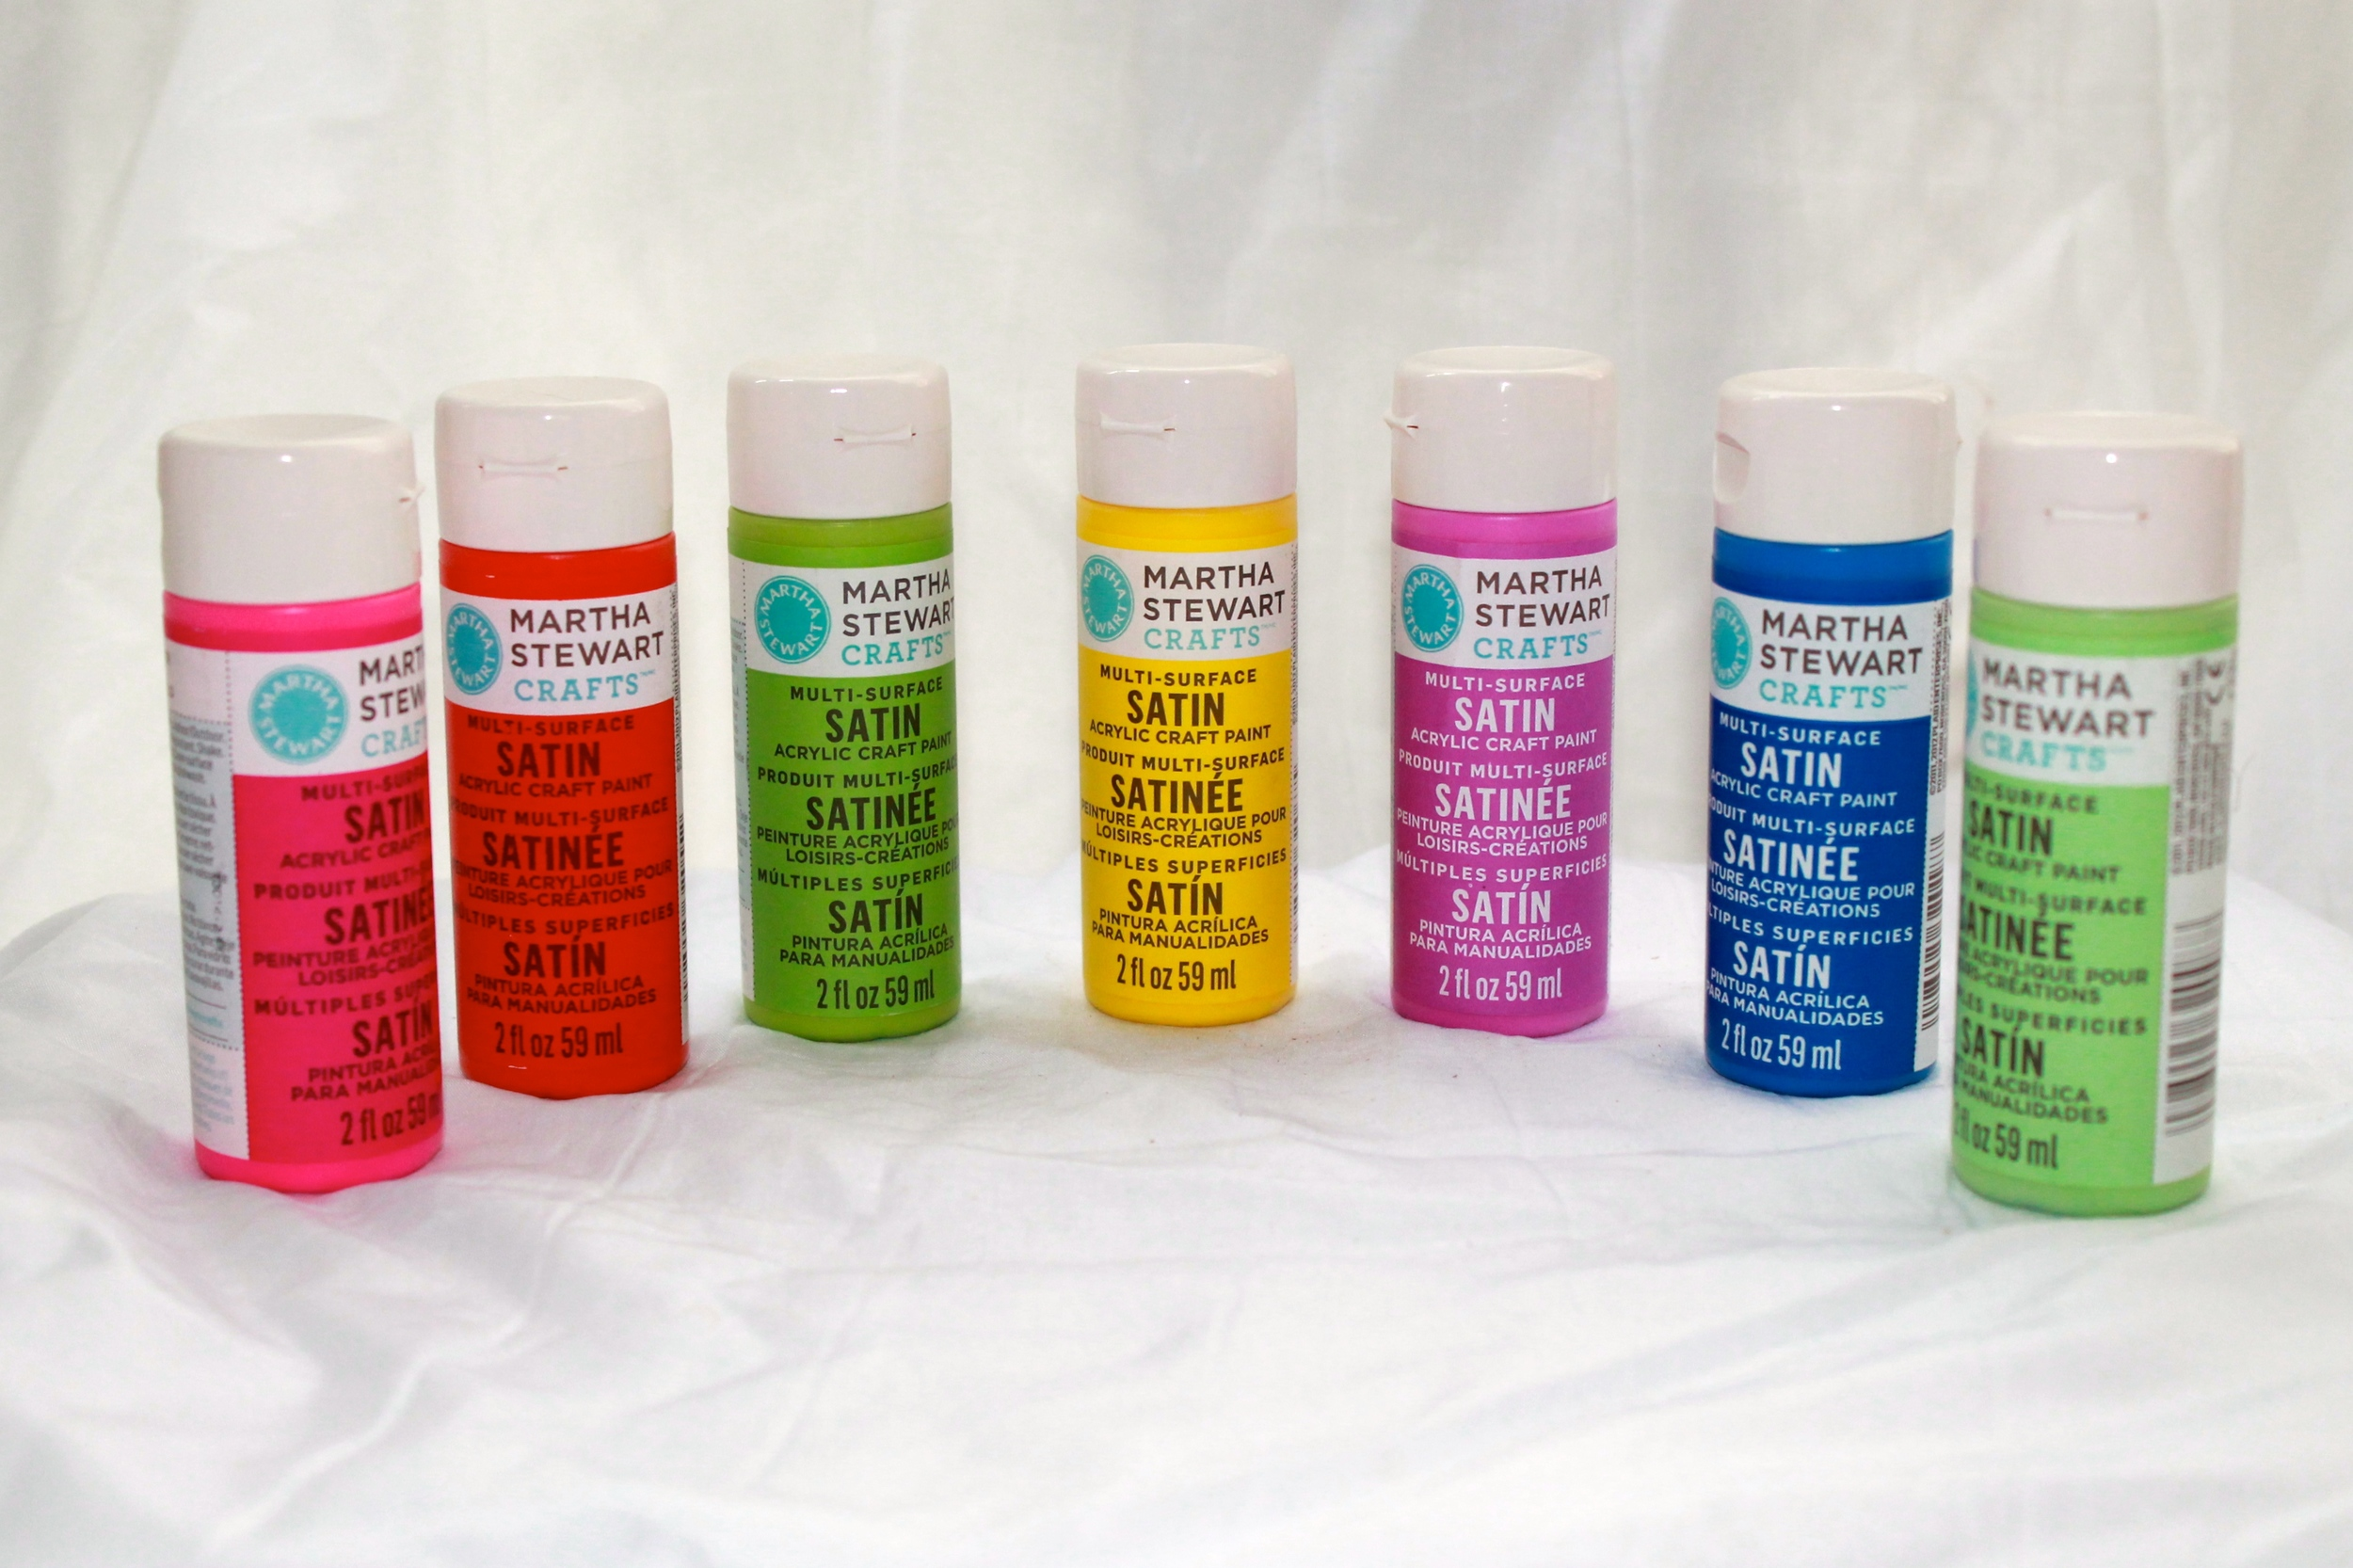 Martha Stewart satin craft paint